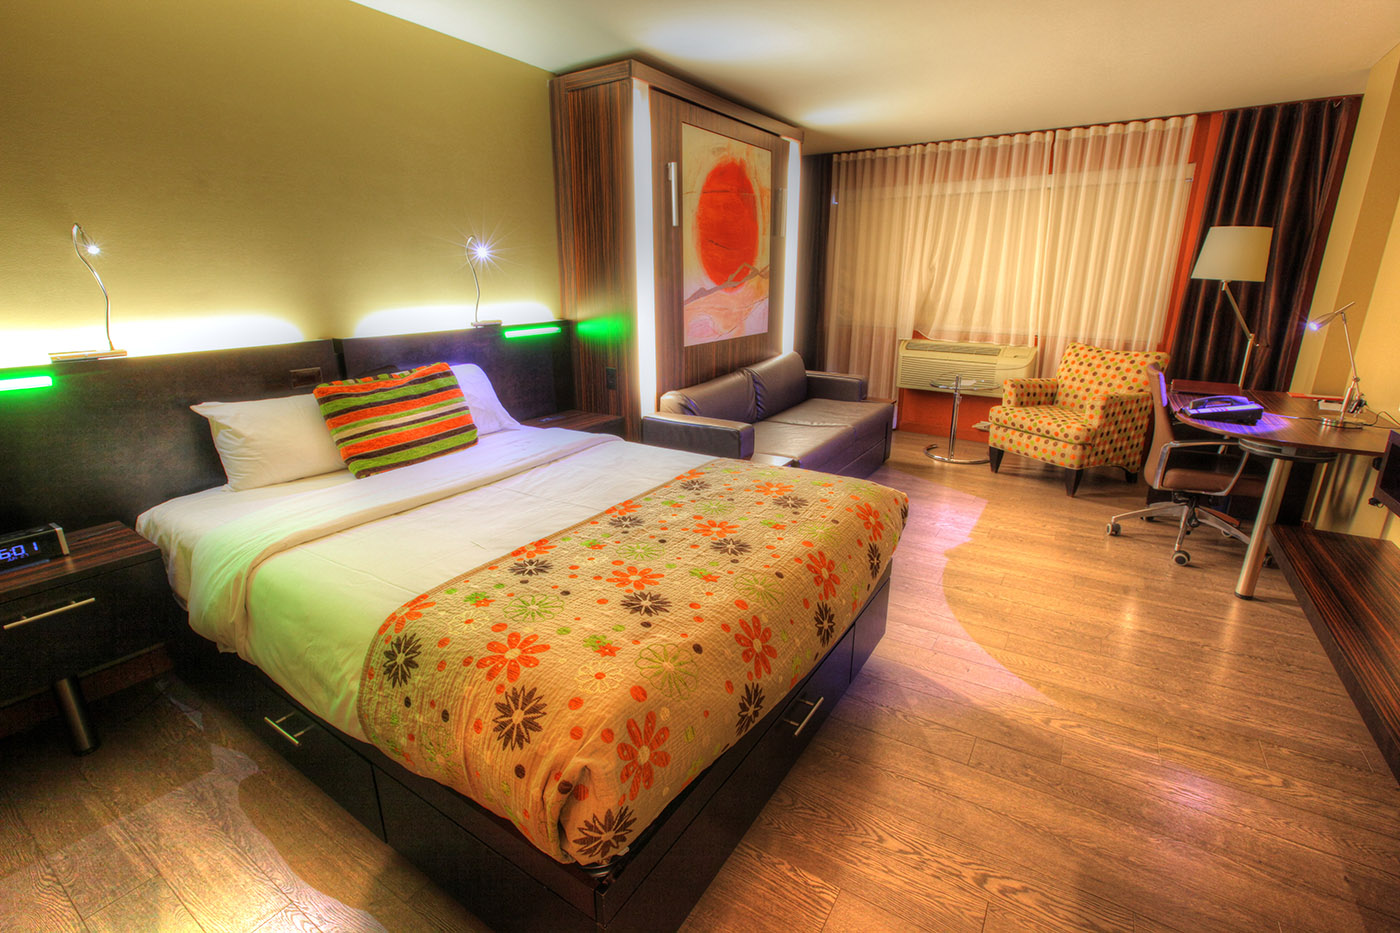 Colorful Hotel Room - stock photos and royalty-free images